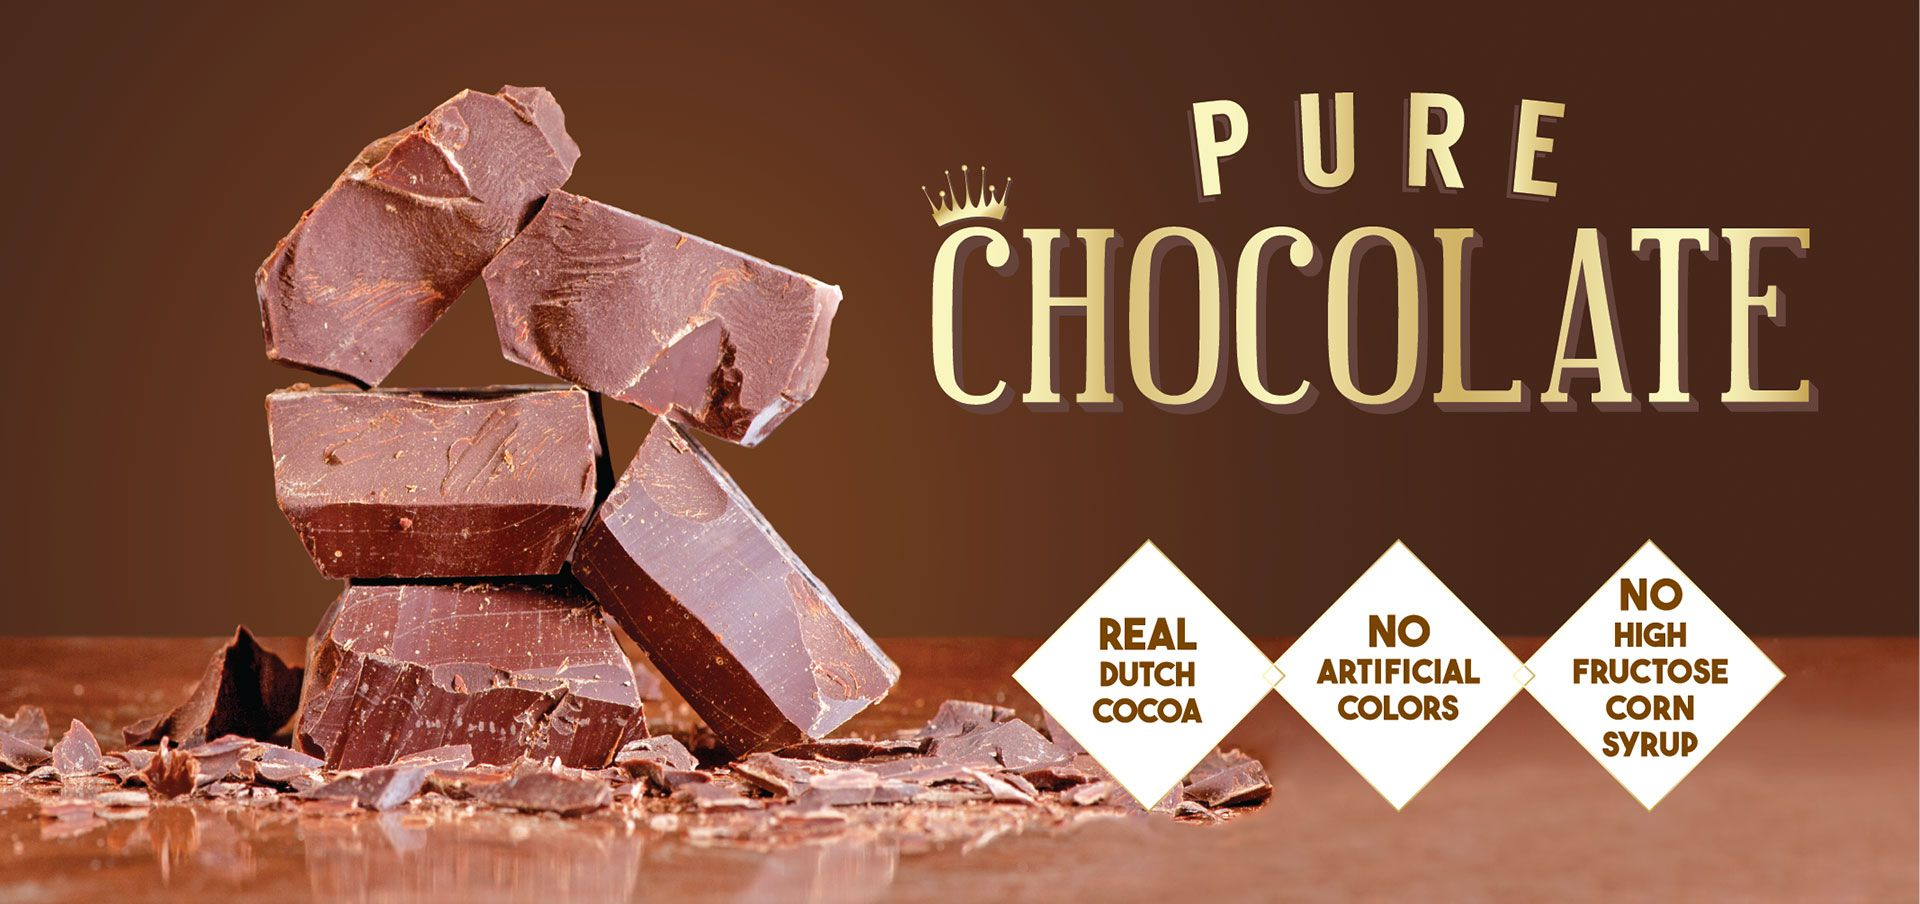 pure chocolate label image